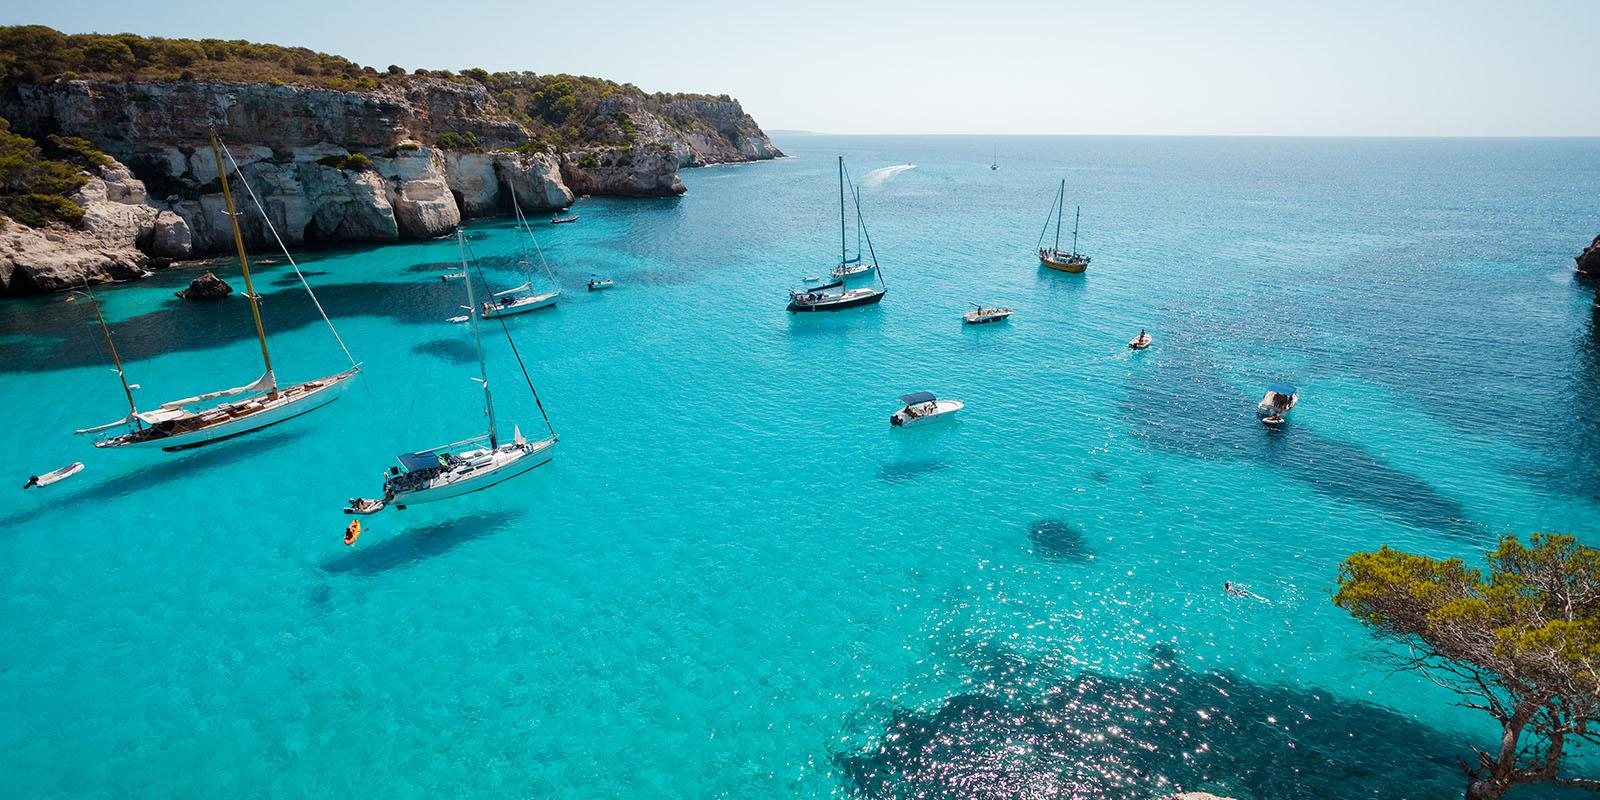 Maiorca, Ibiza e Formentera. What else?